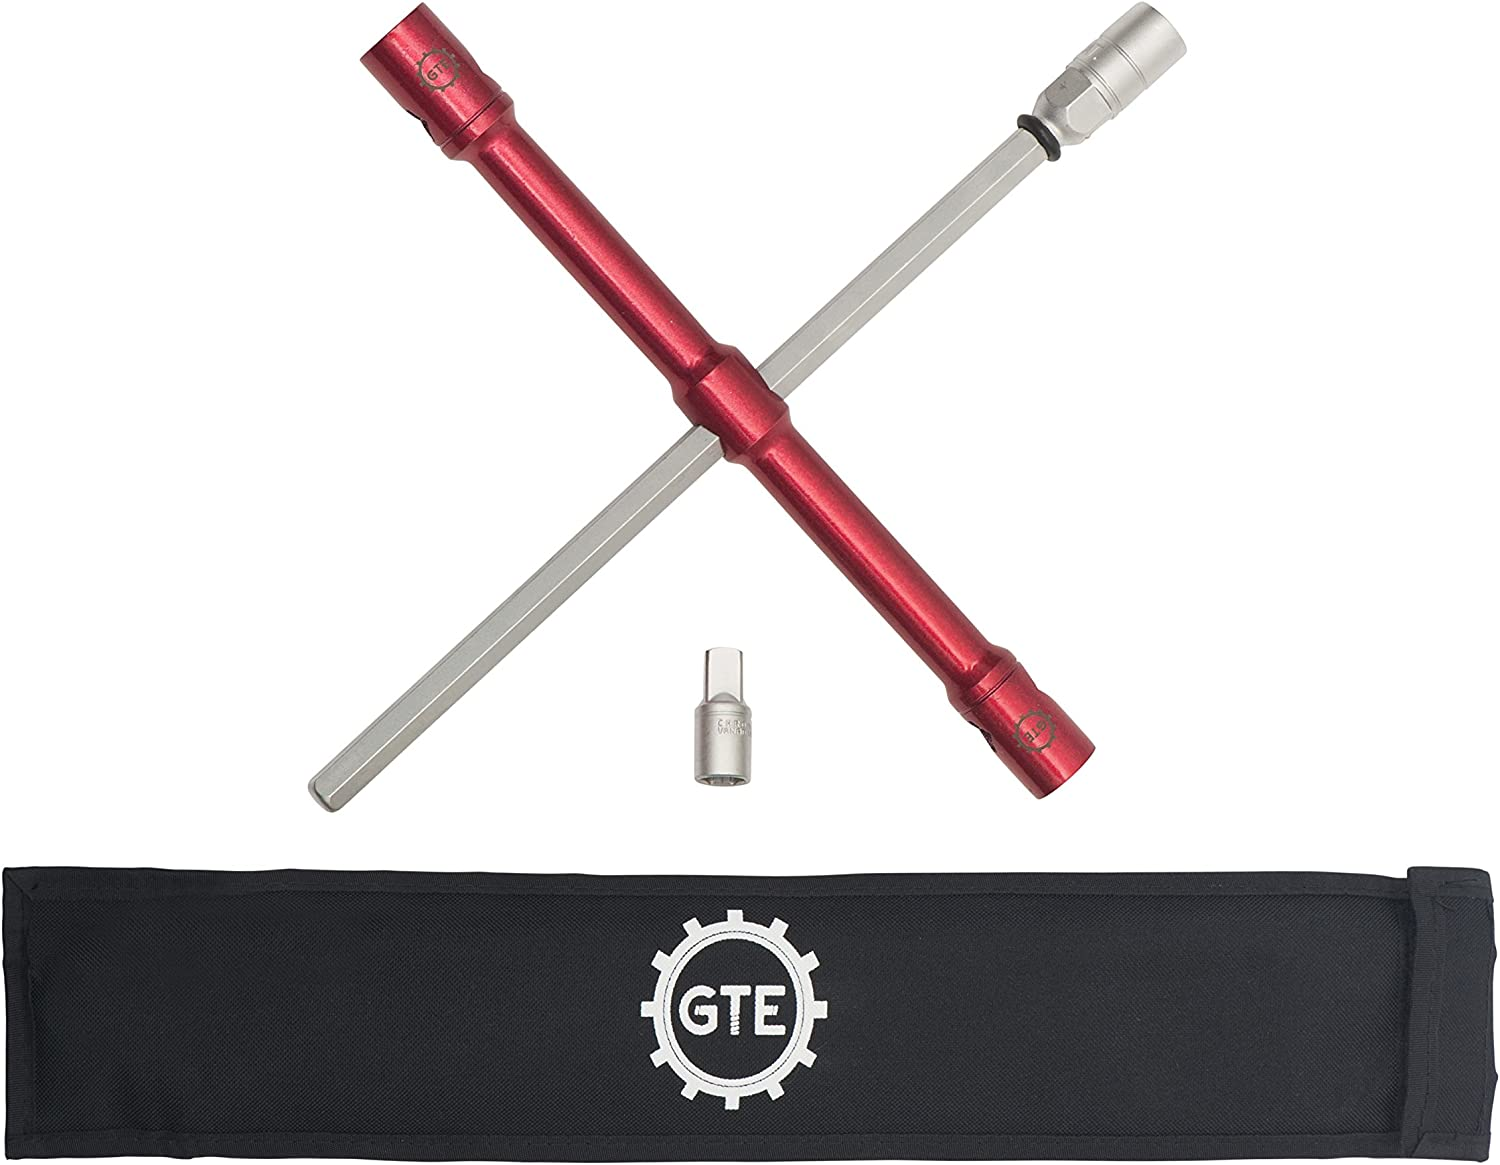 """GTE Tools - LugStrong 26"""" Universal Compact Lug WrenchSet, Super-Strong Tire Iron & Lug Nut Remover - 2X More Torque! Never Get Stuck on The Road Again!: Automotive"""